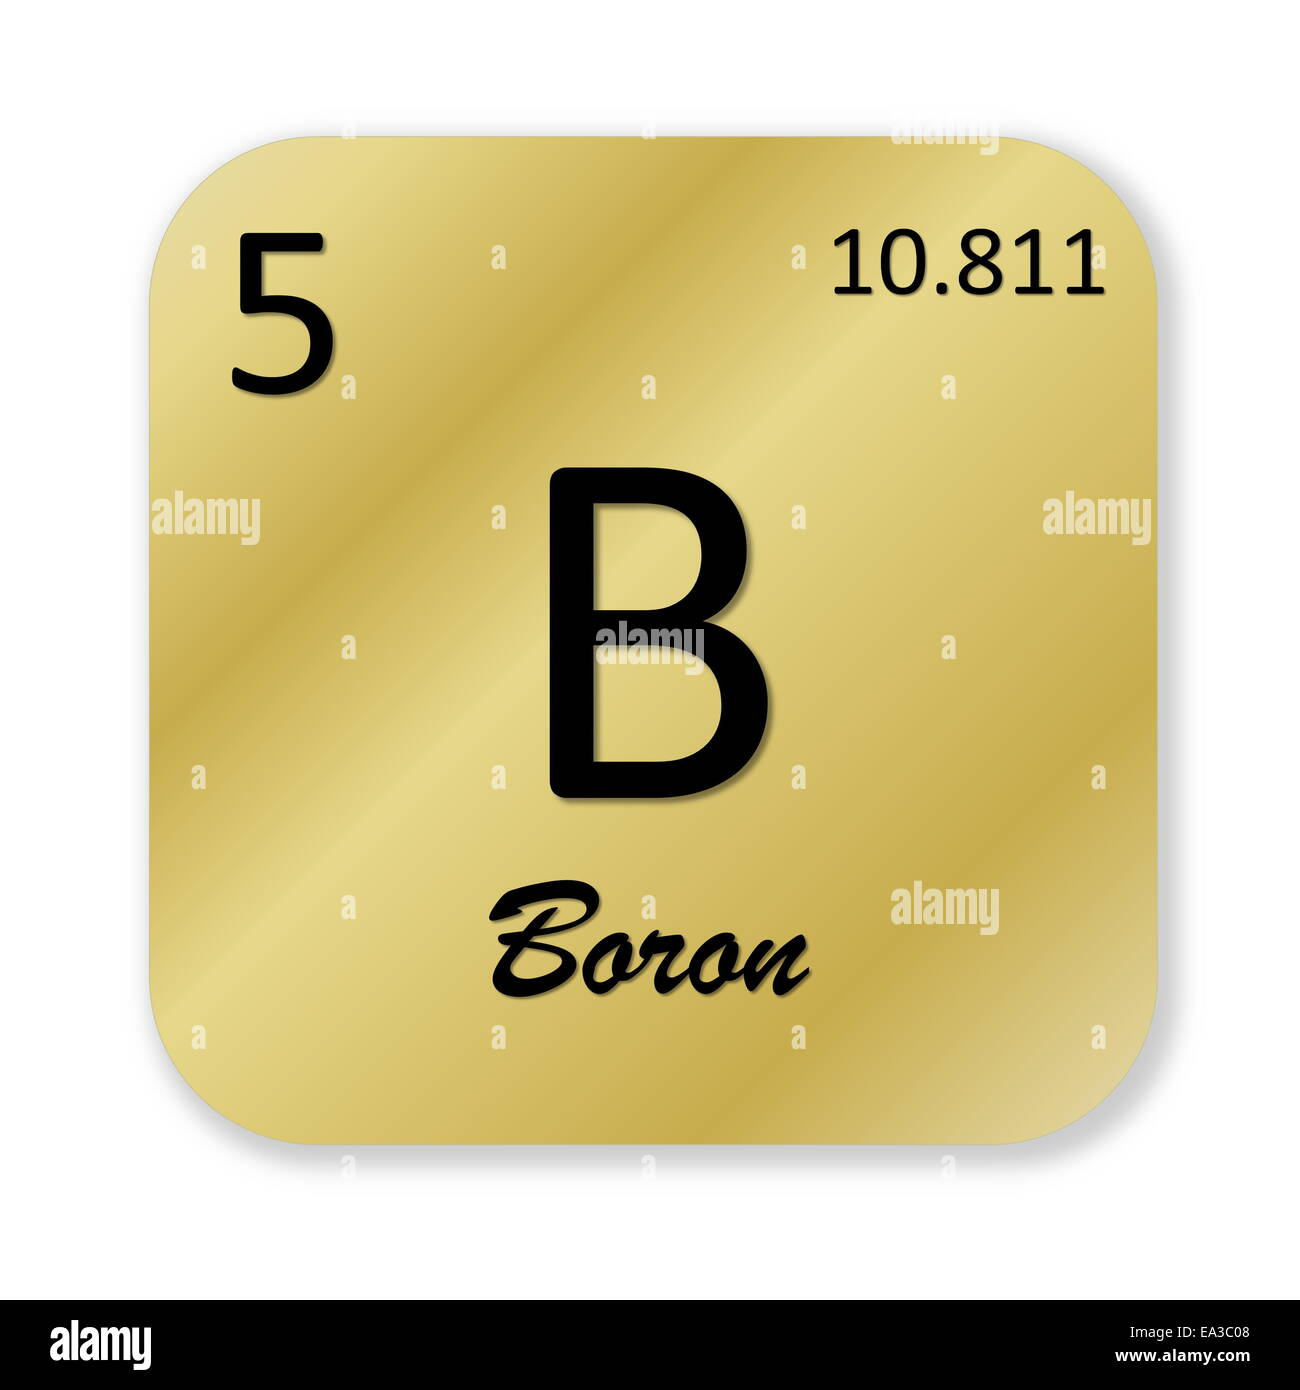 Boron element stock photo royalty free image 75063304 alamy boron element buycottarizona